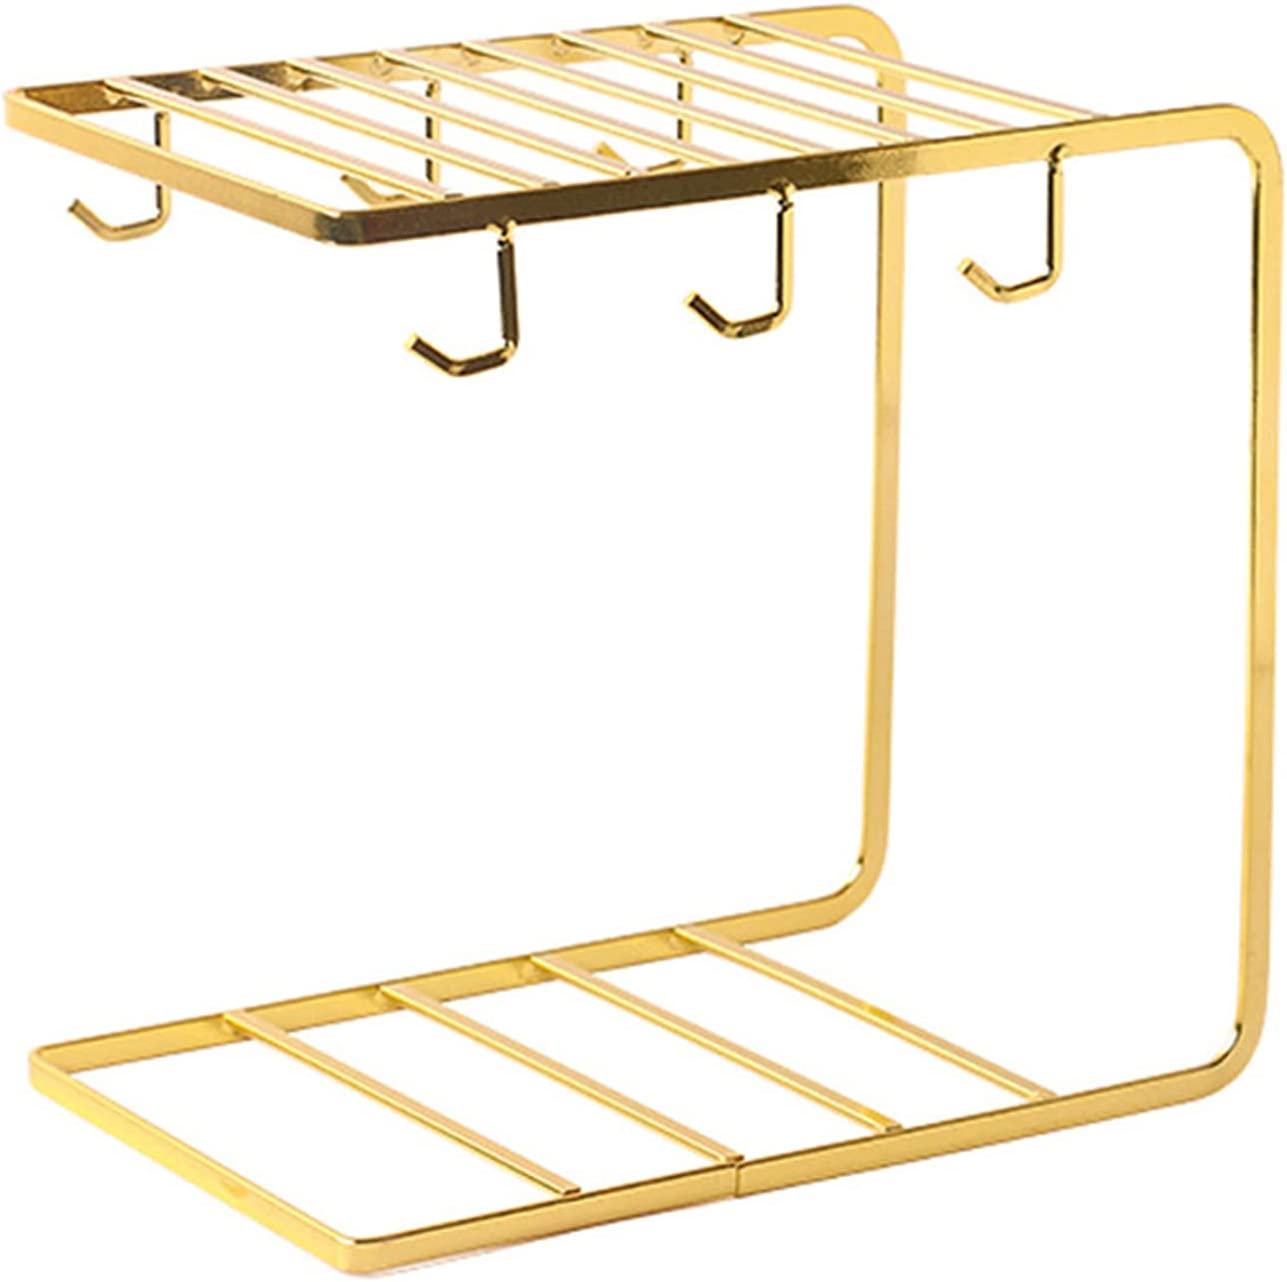 DKBE Stainless Steel All stores are sold Cup Holder Organizer Rack Kitchen Storage Store